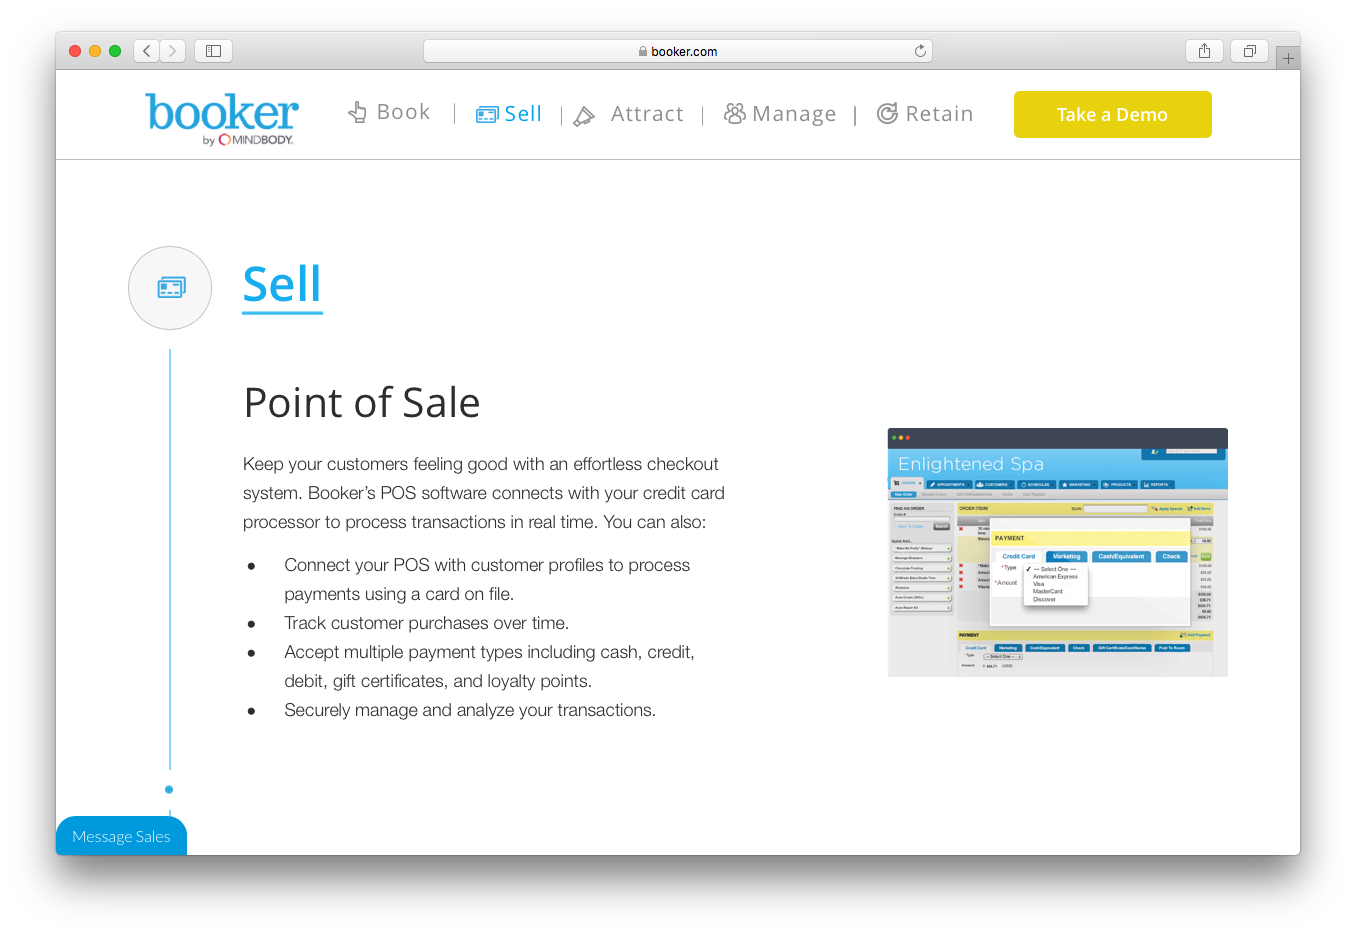 Booker sell point of sale POS software process transactions track purchases